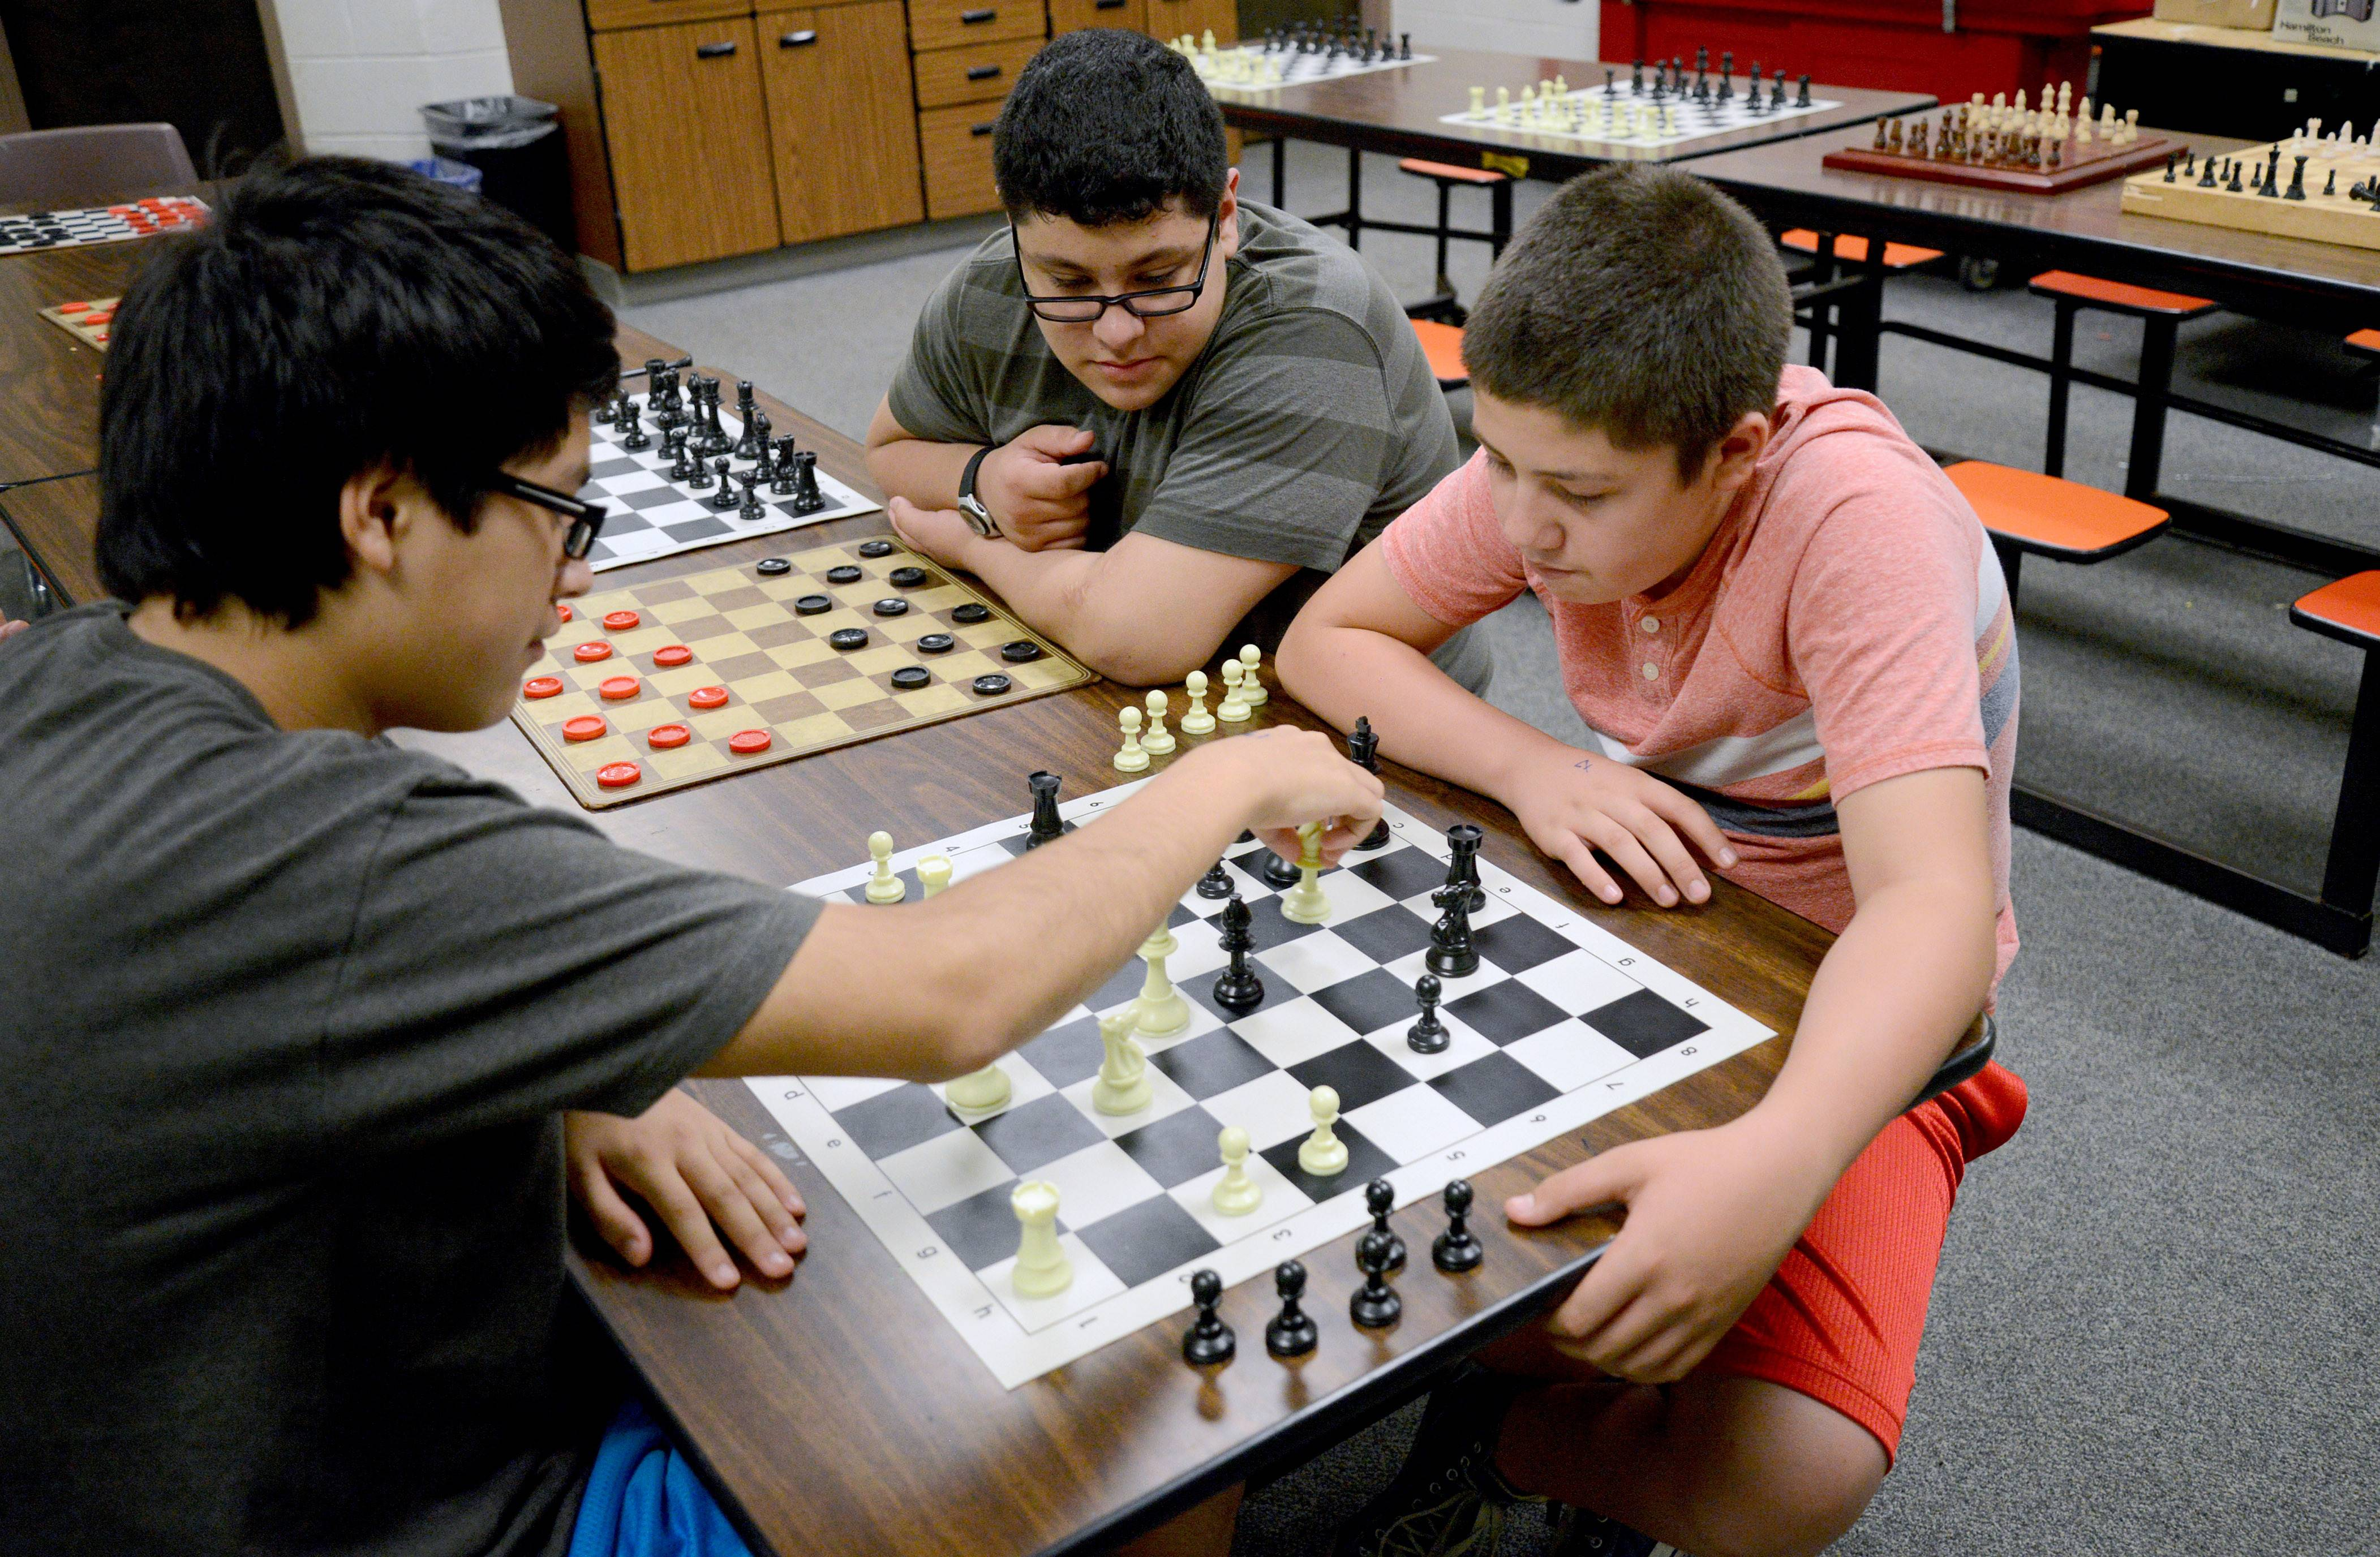 Jose Gomez, 15, left makes his move while playing against Carlos Galarza, 14, as Fabian Lechuga, 13, observes Tuesday at the Elgin Police Department's Kids United program at Abbott Middle School in Elgin. Jose has been coming to the program since he was 8 years old. Now the minimum age to attend is 9.